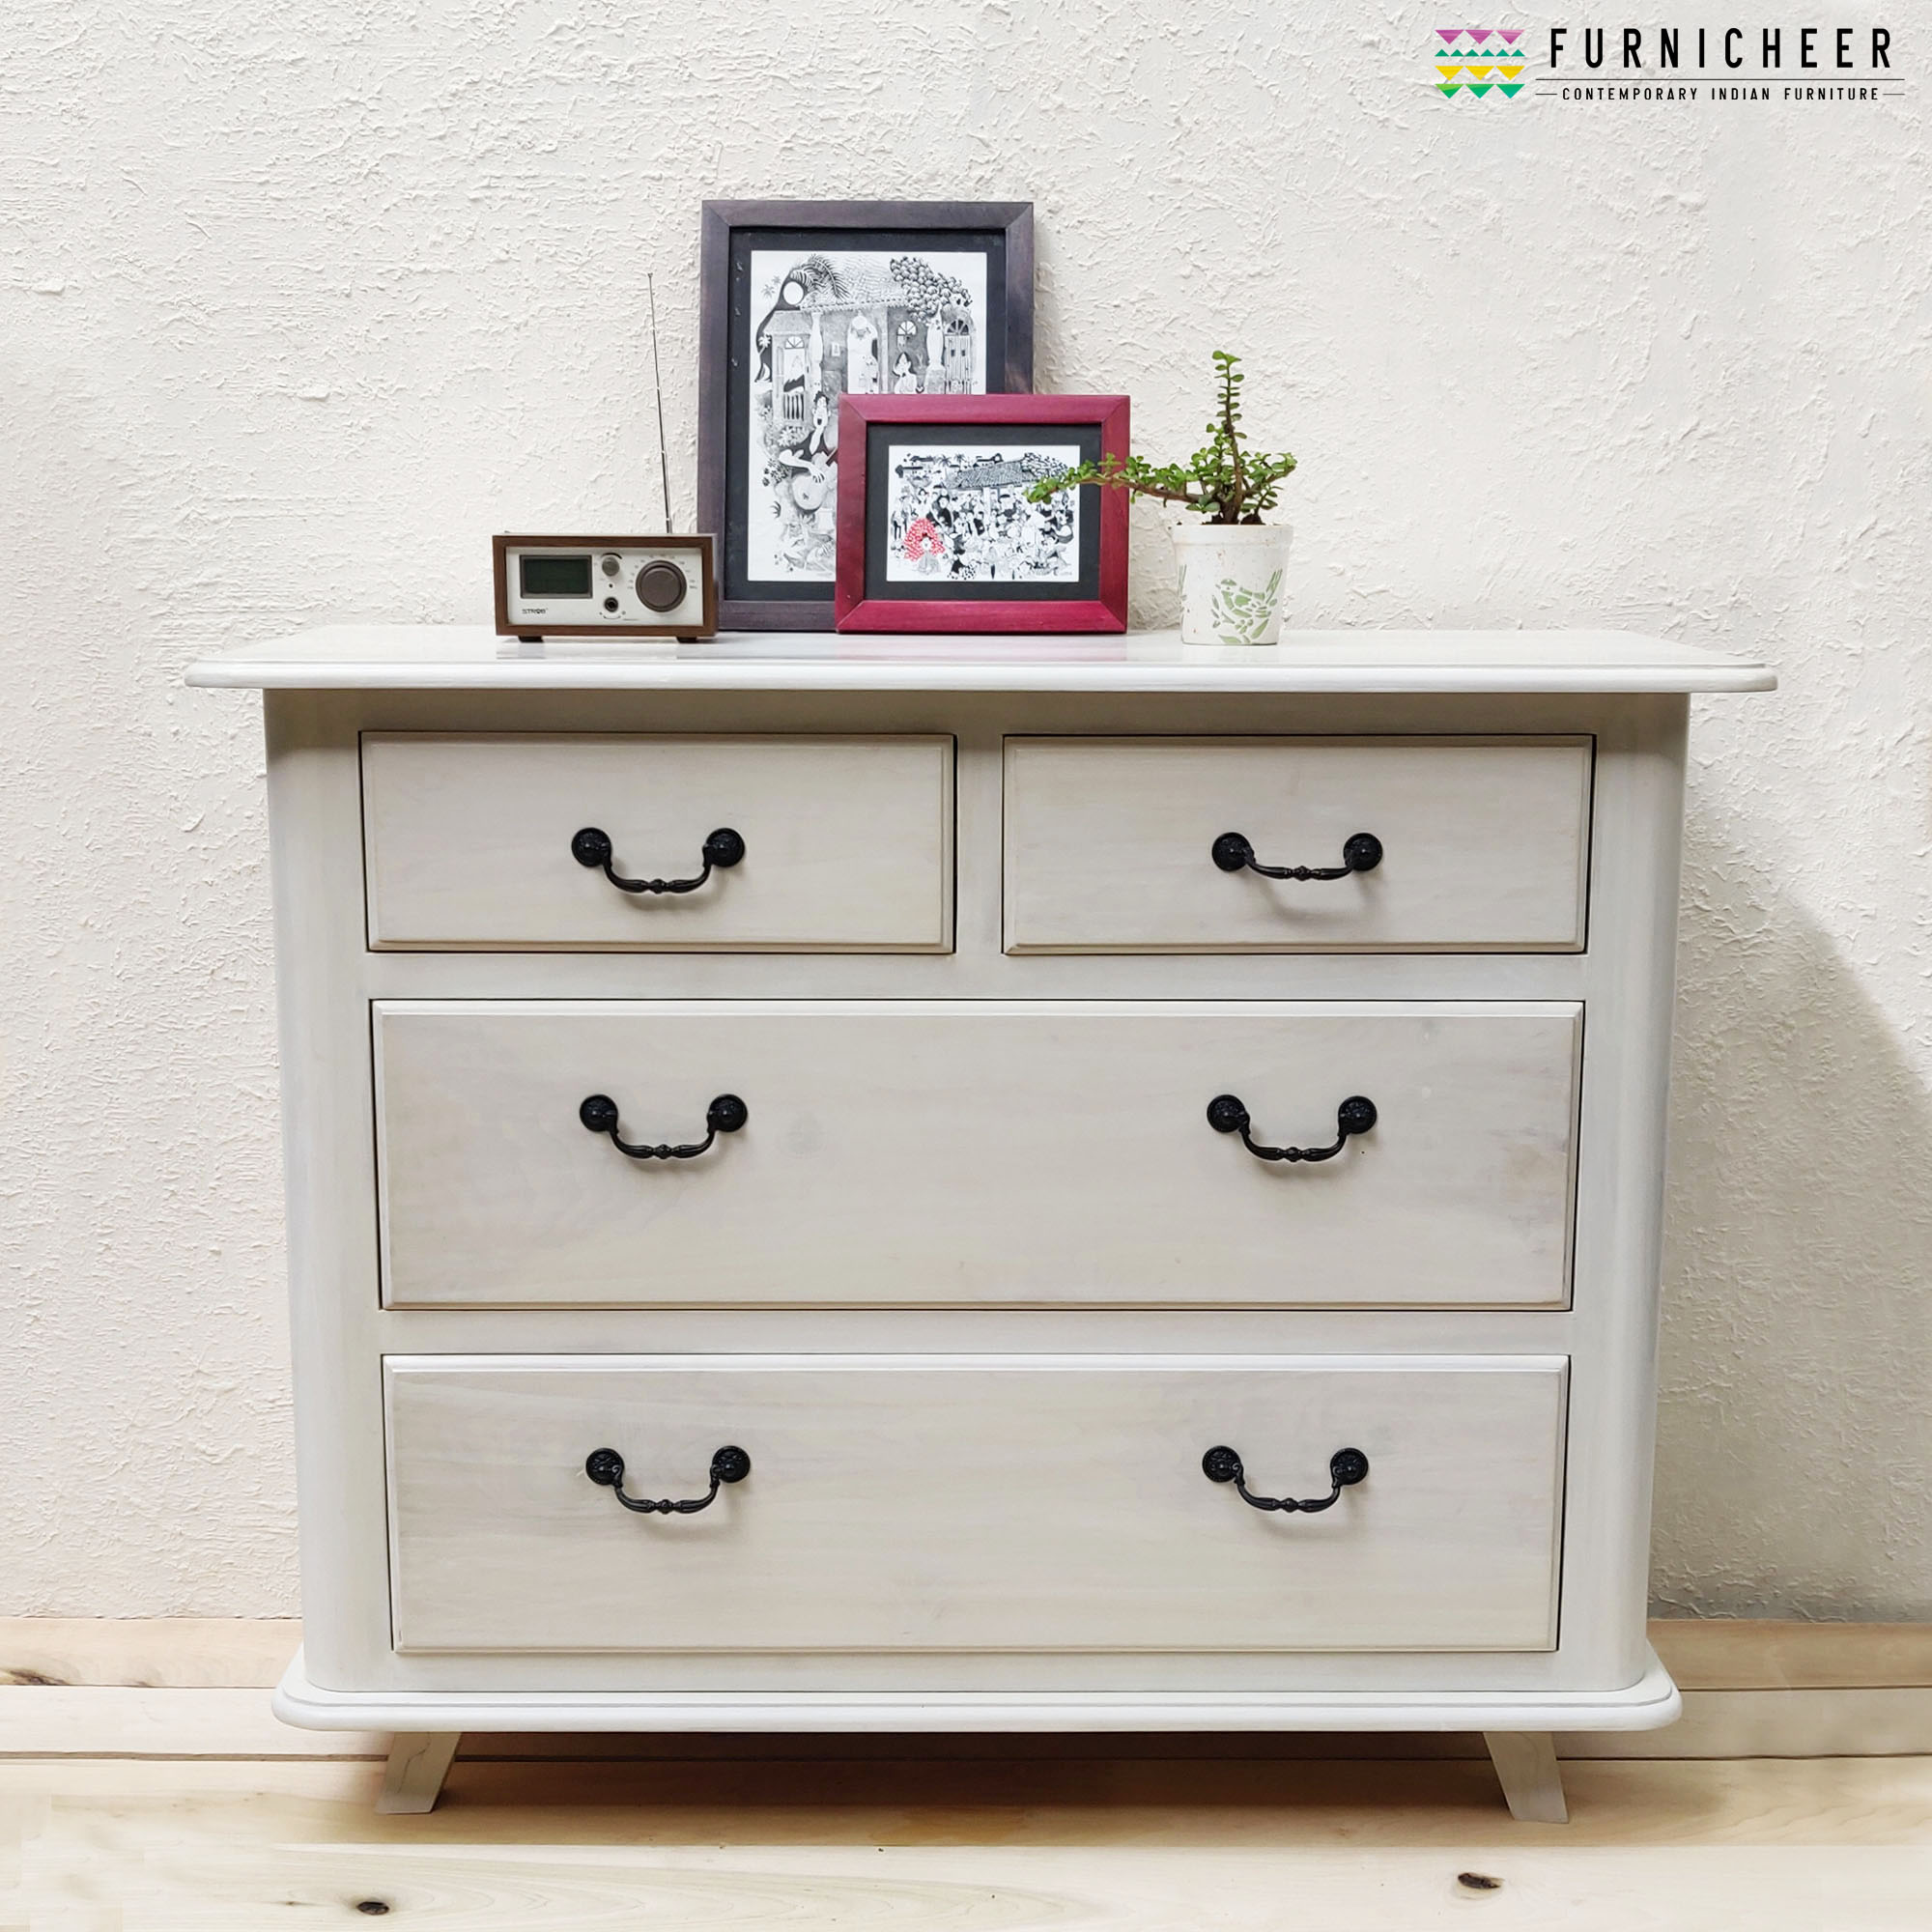 1.CHEST OF DRAWER SKU CDWT0001